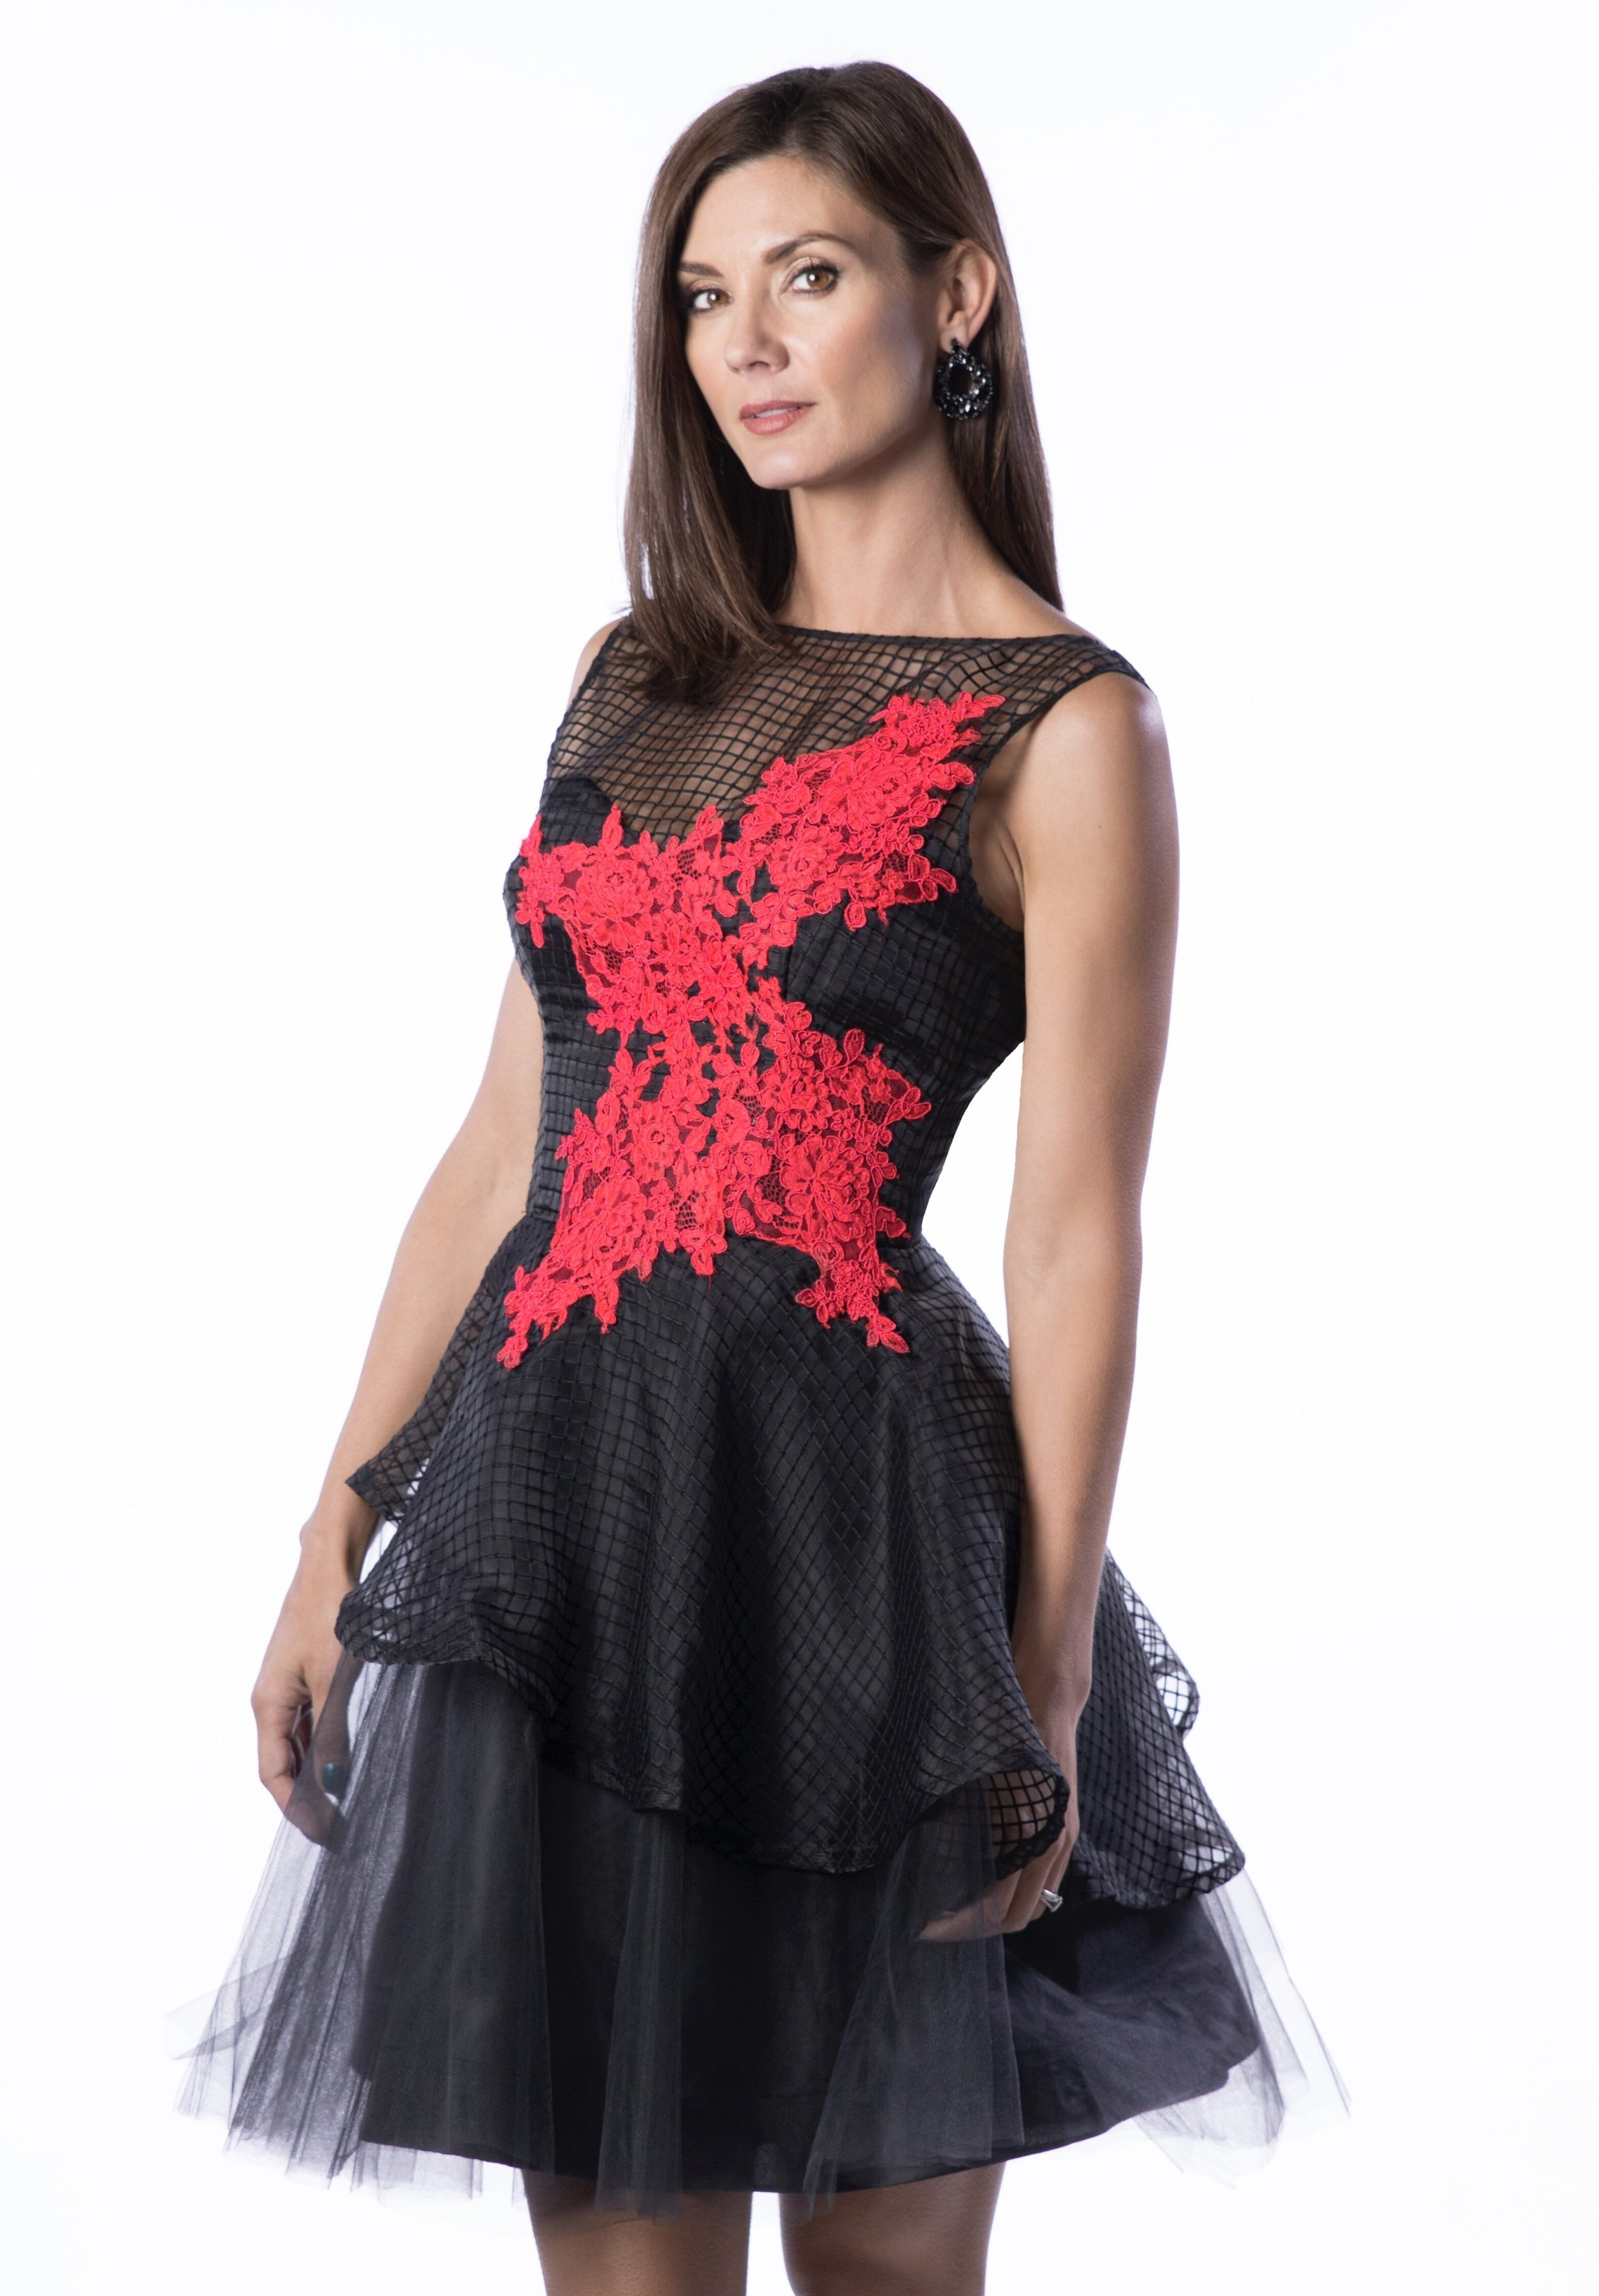 Andrea Tiered Fit-&-Flare Dress, Black/Red- $545